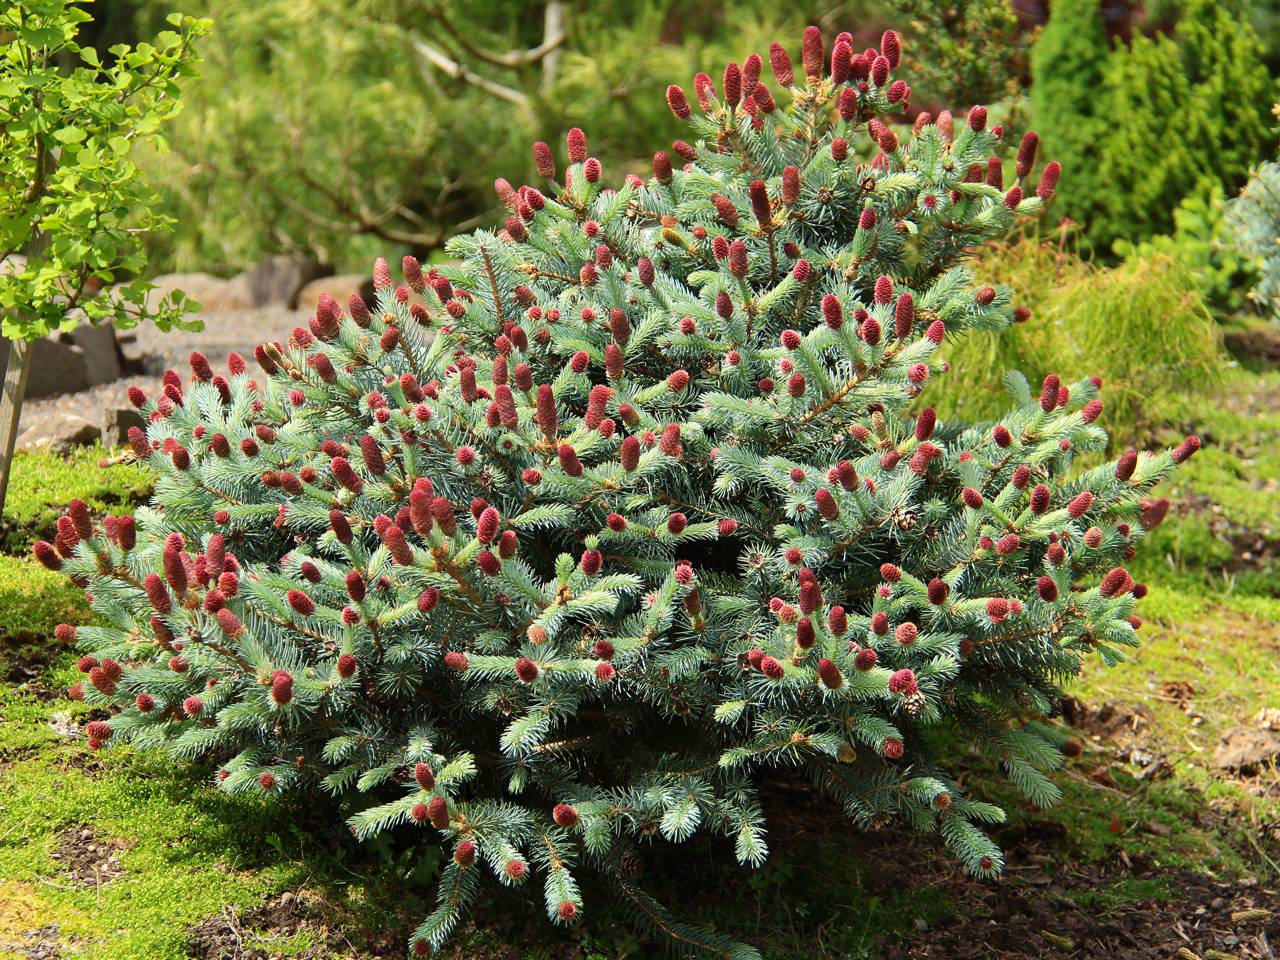 Picea pungens Ruby Teardrops Colorado Spruce conifer evergreen red cones